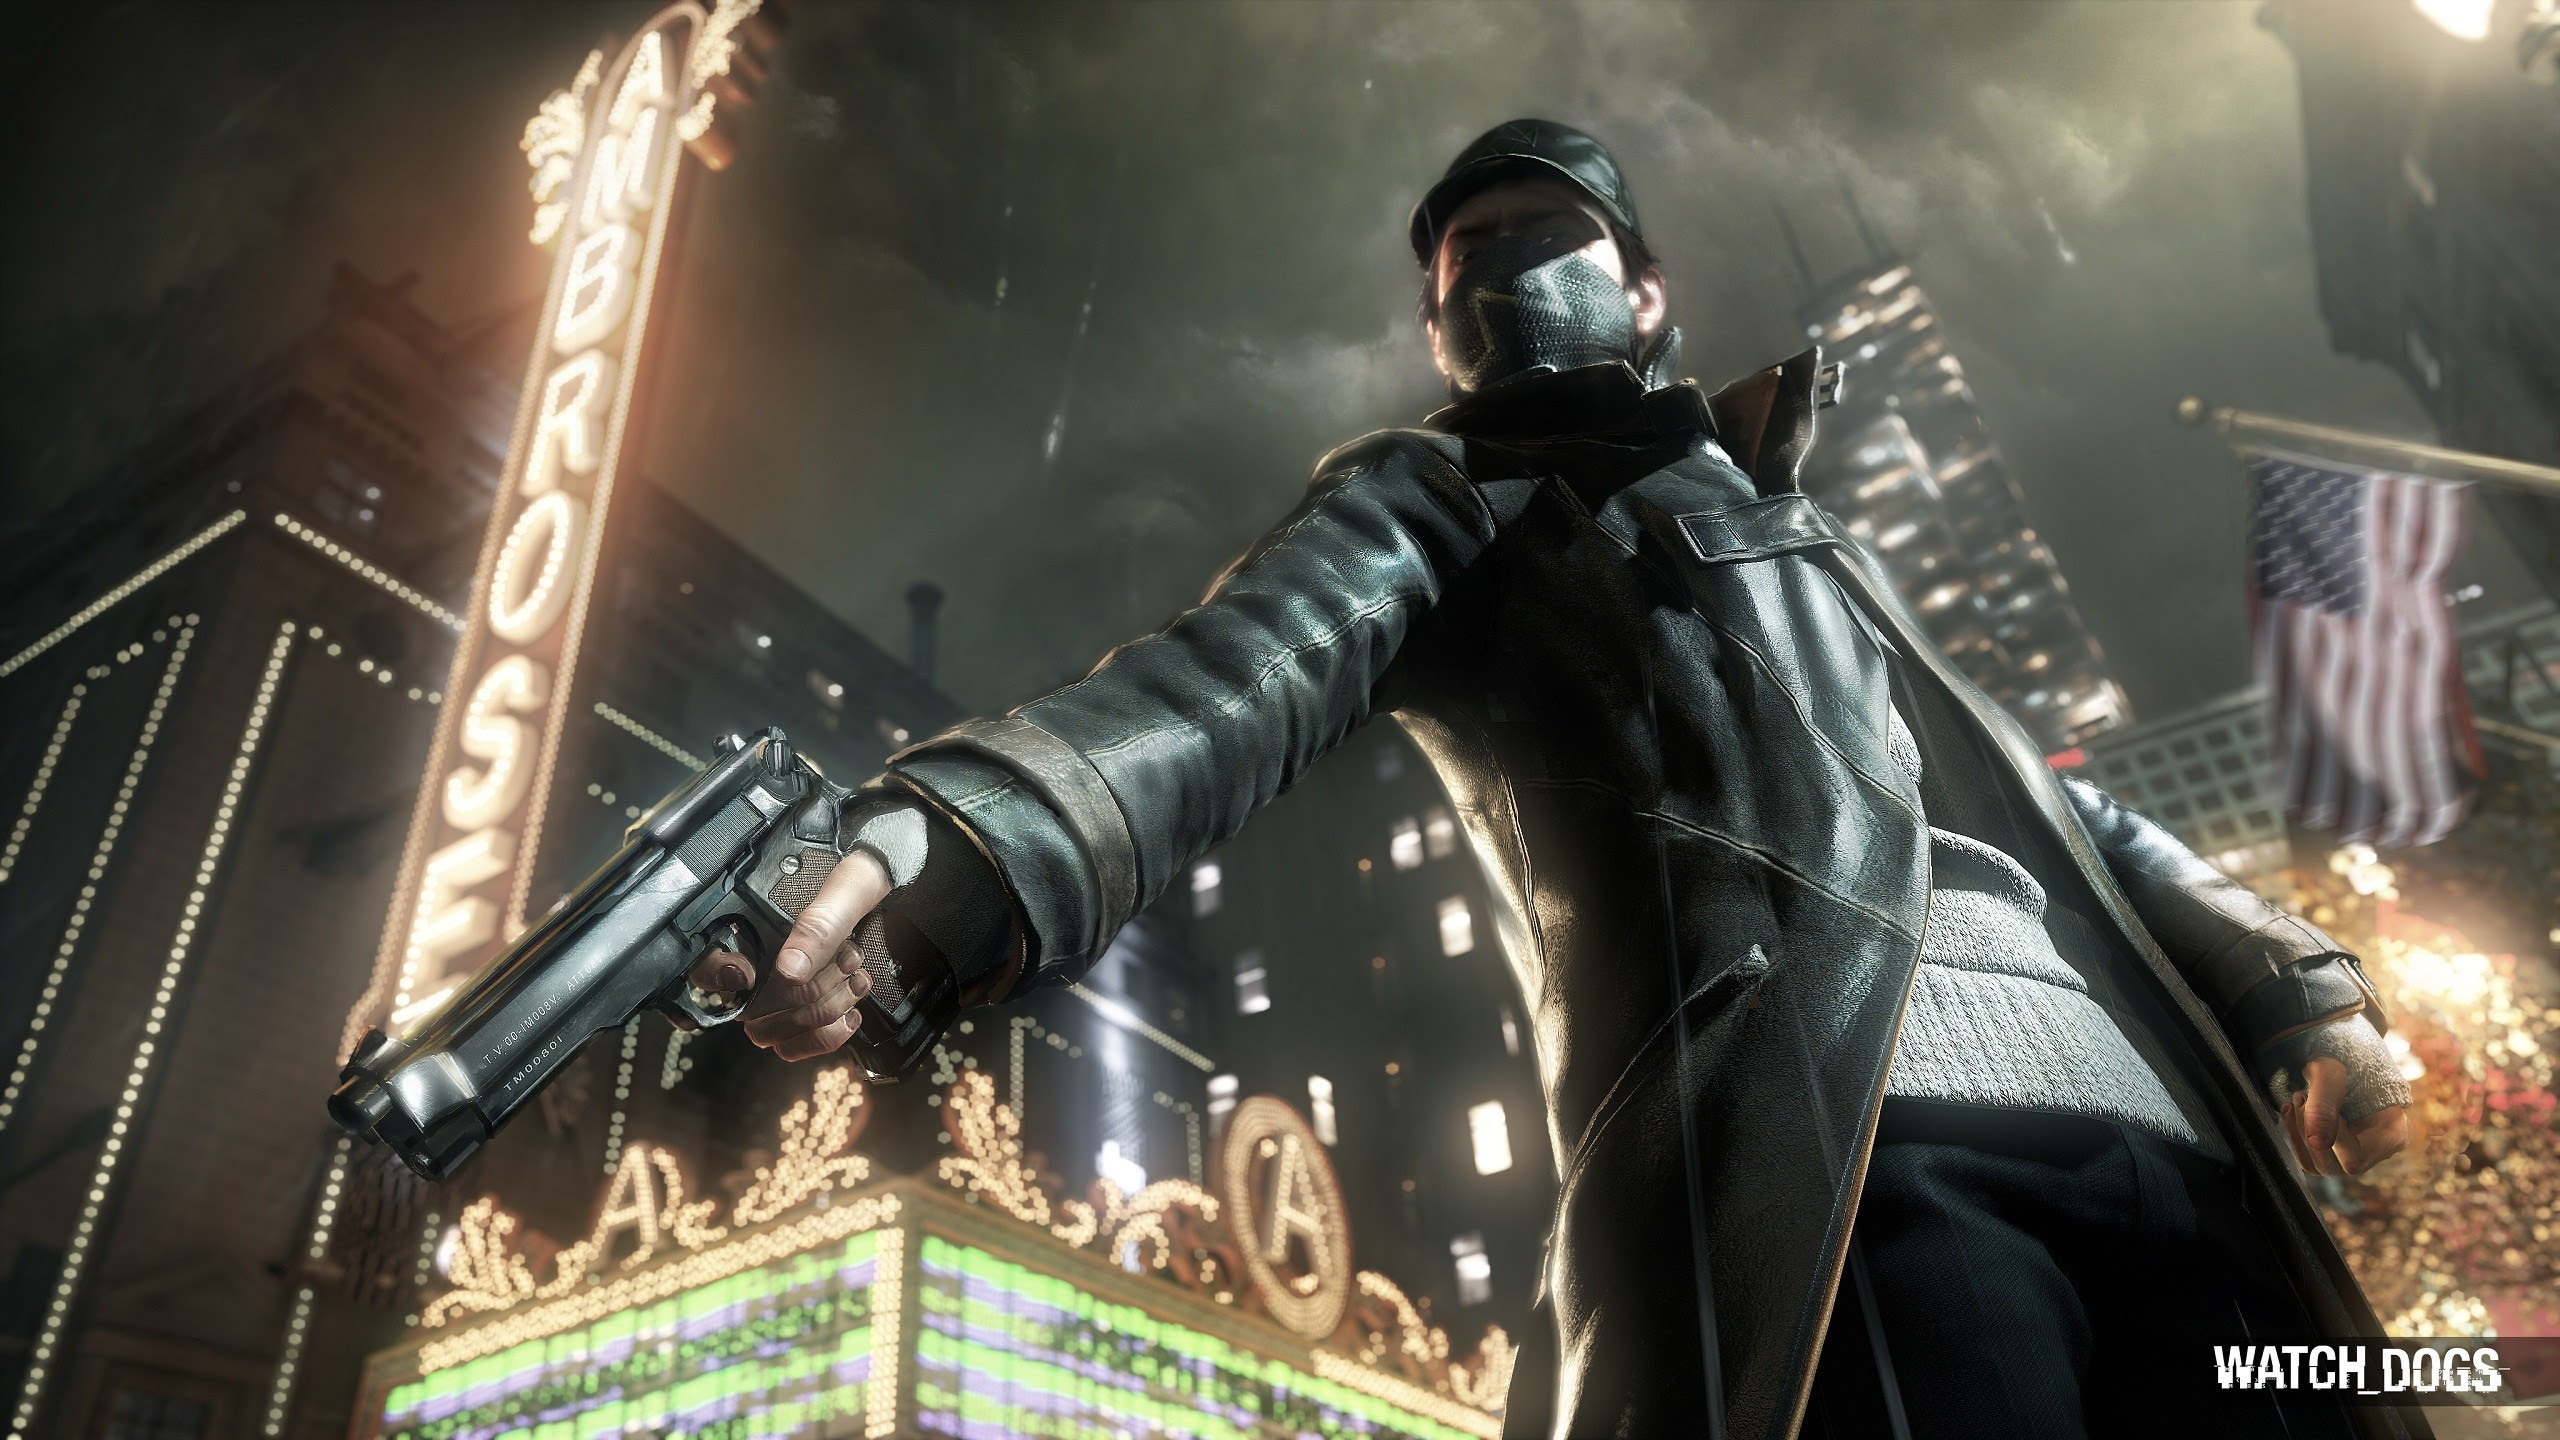 Anime Video Games Watch Dogs Ubisoft Aiden Pearce Wallpapers Images, Photos, Reviews